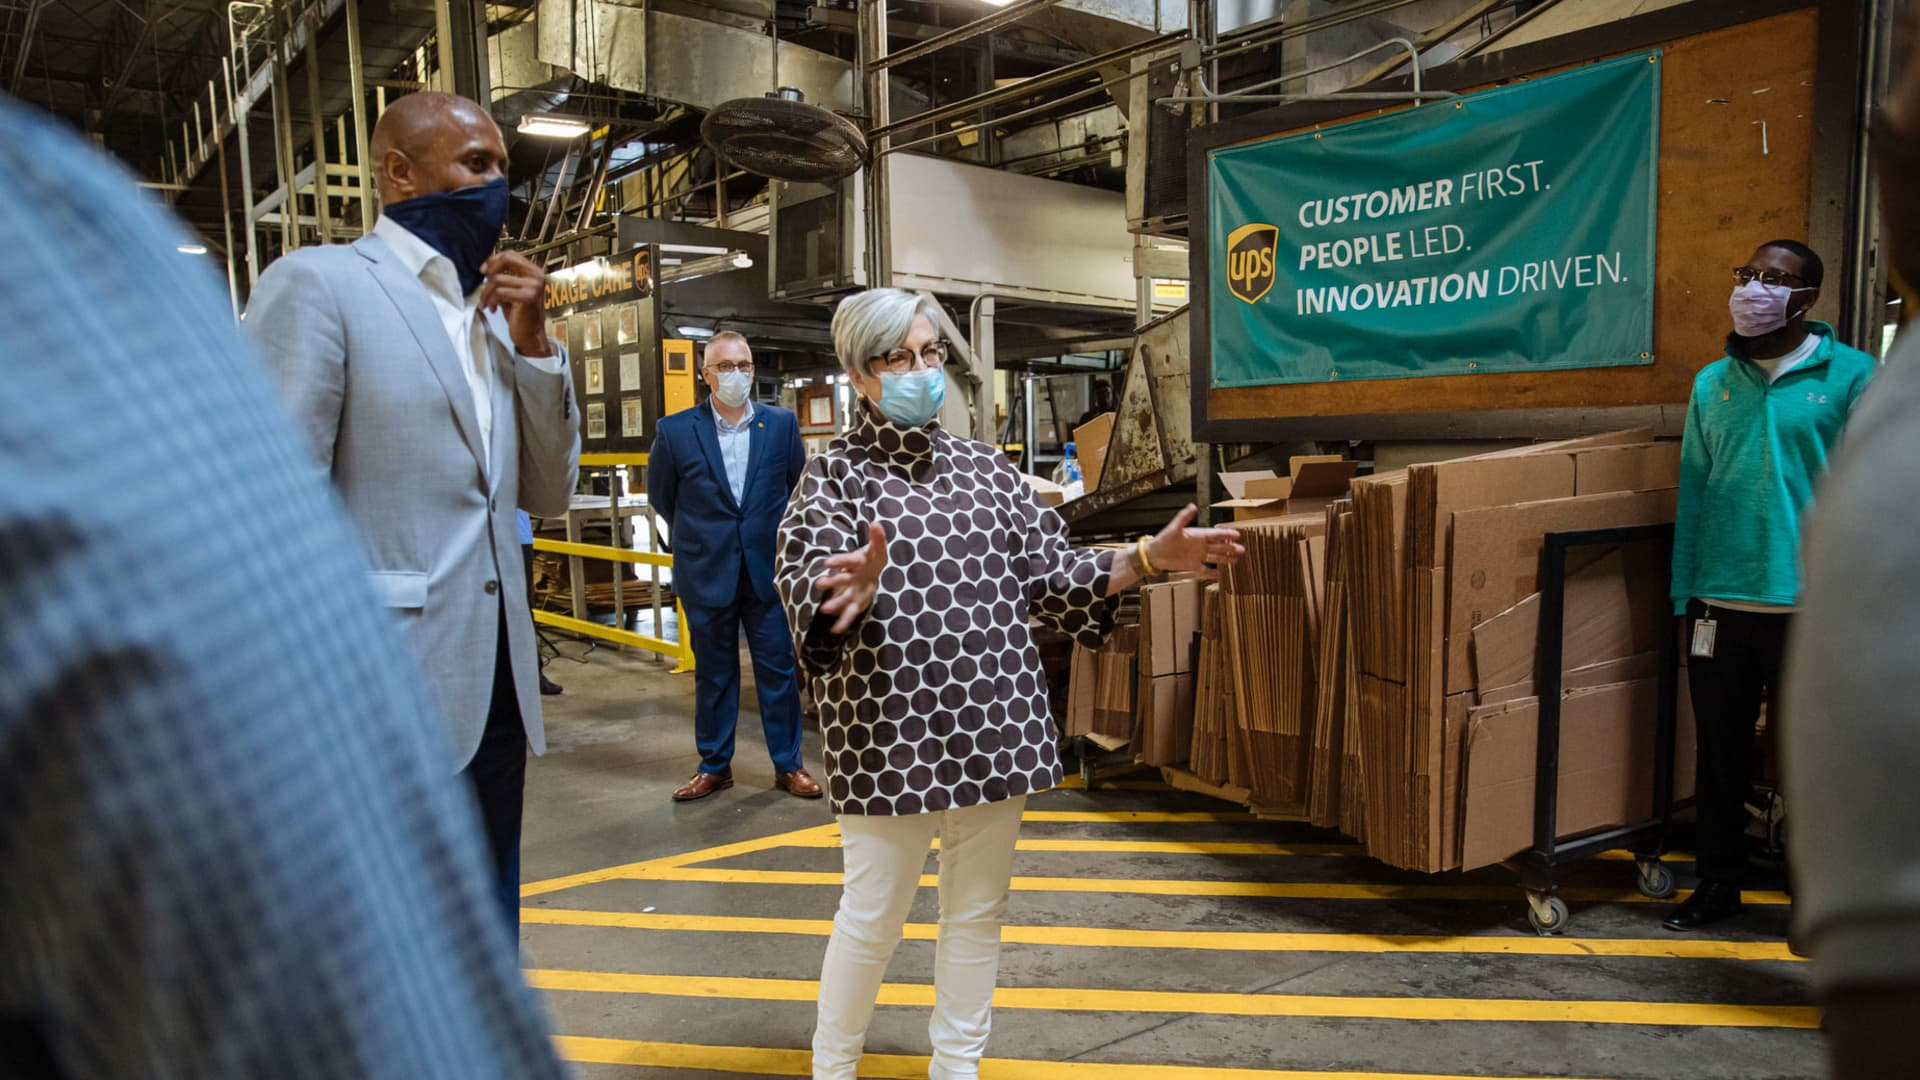 UPS CEO Carol Tome meets with workers